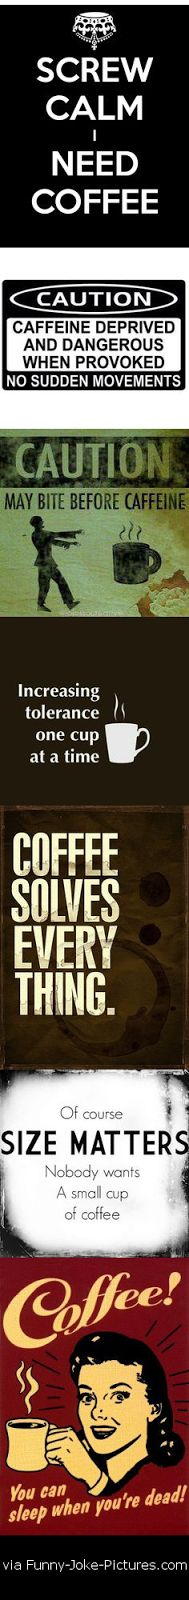 Funny Coffee Sign Collection